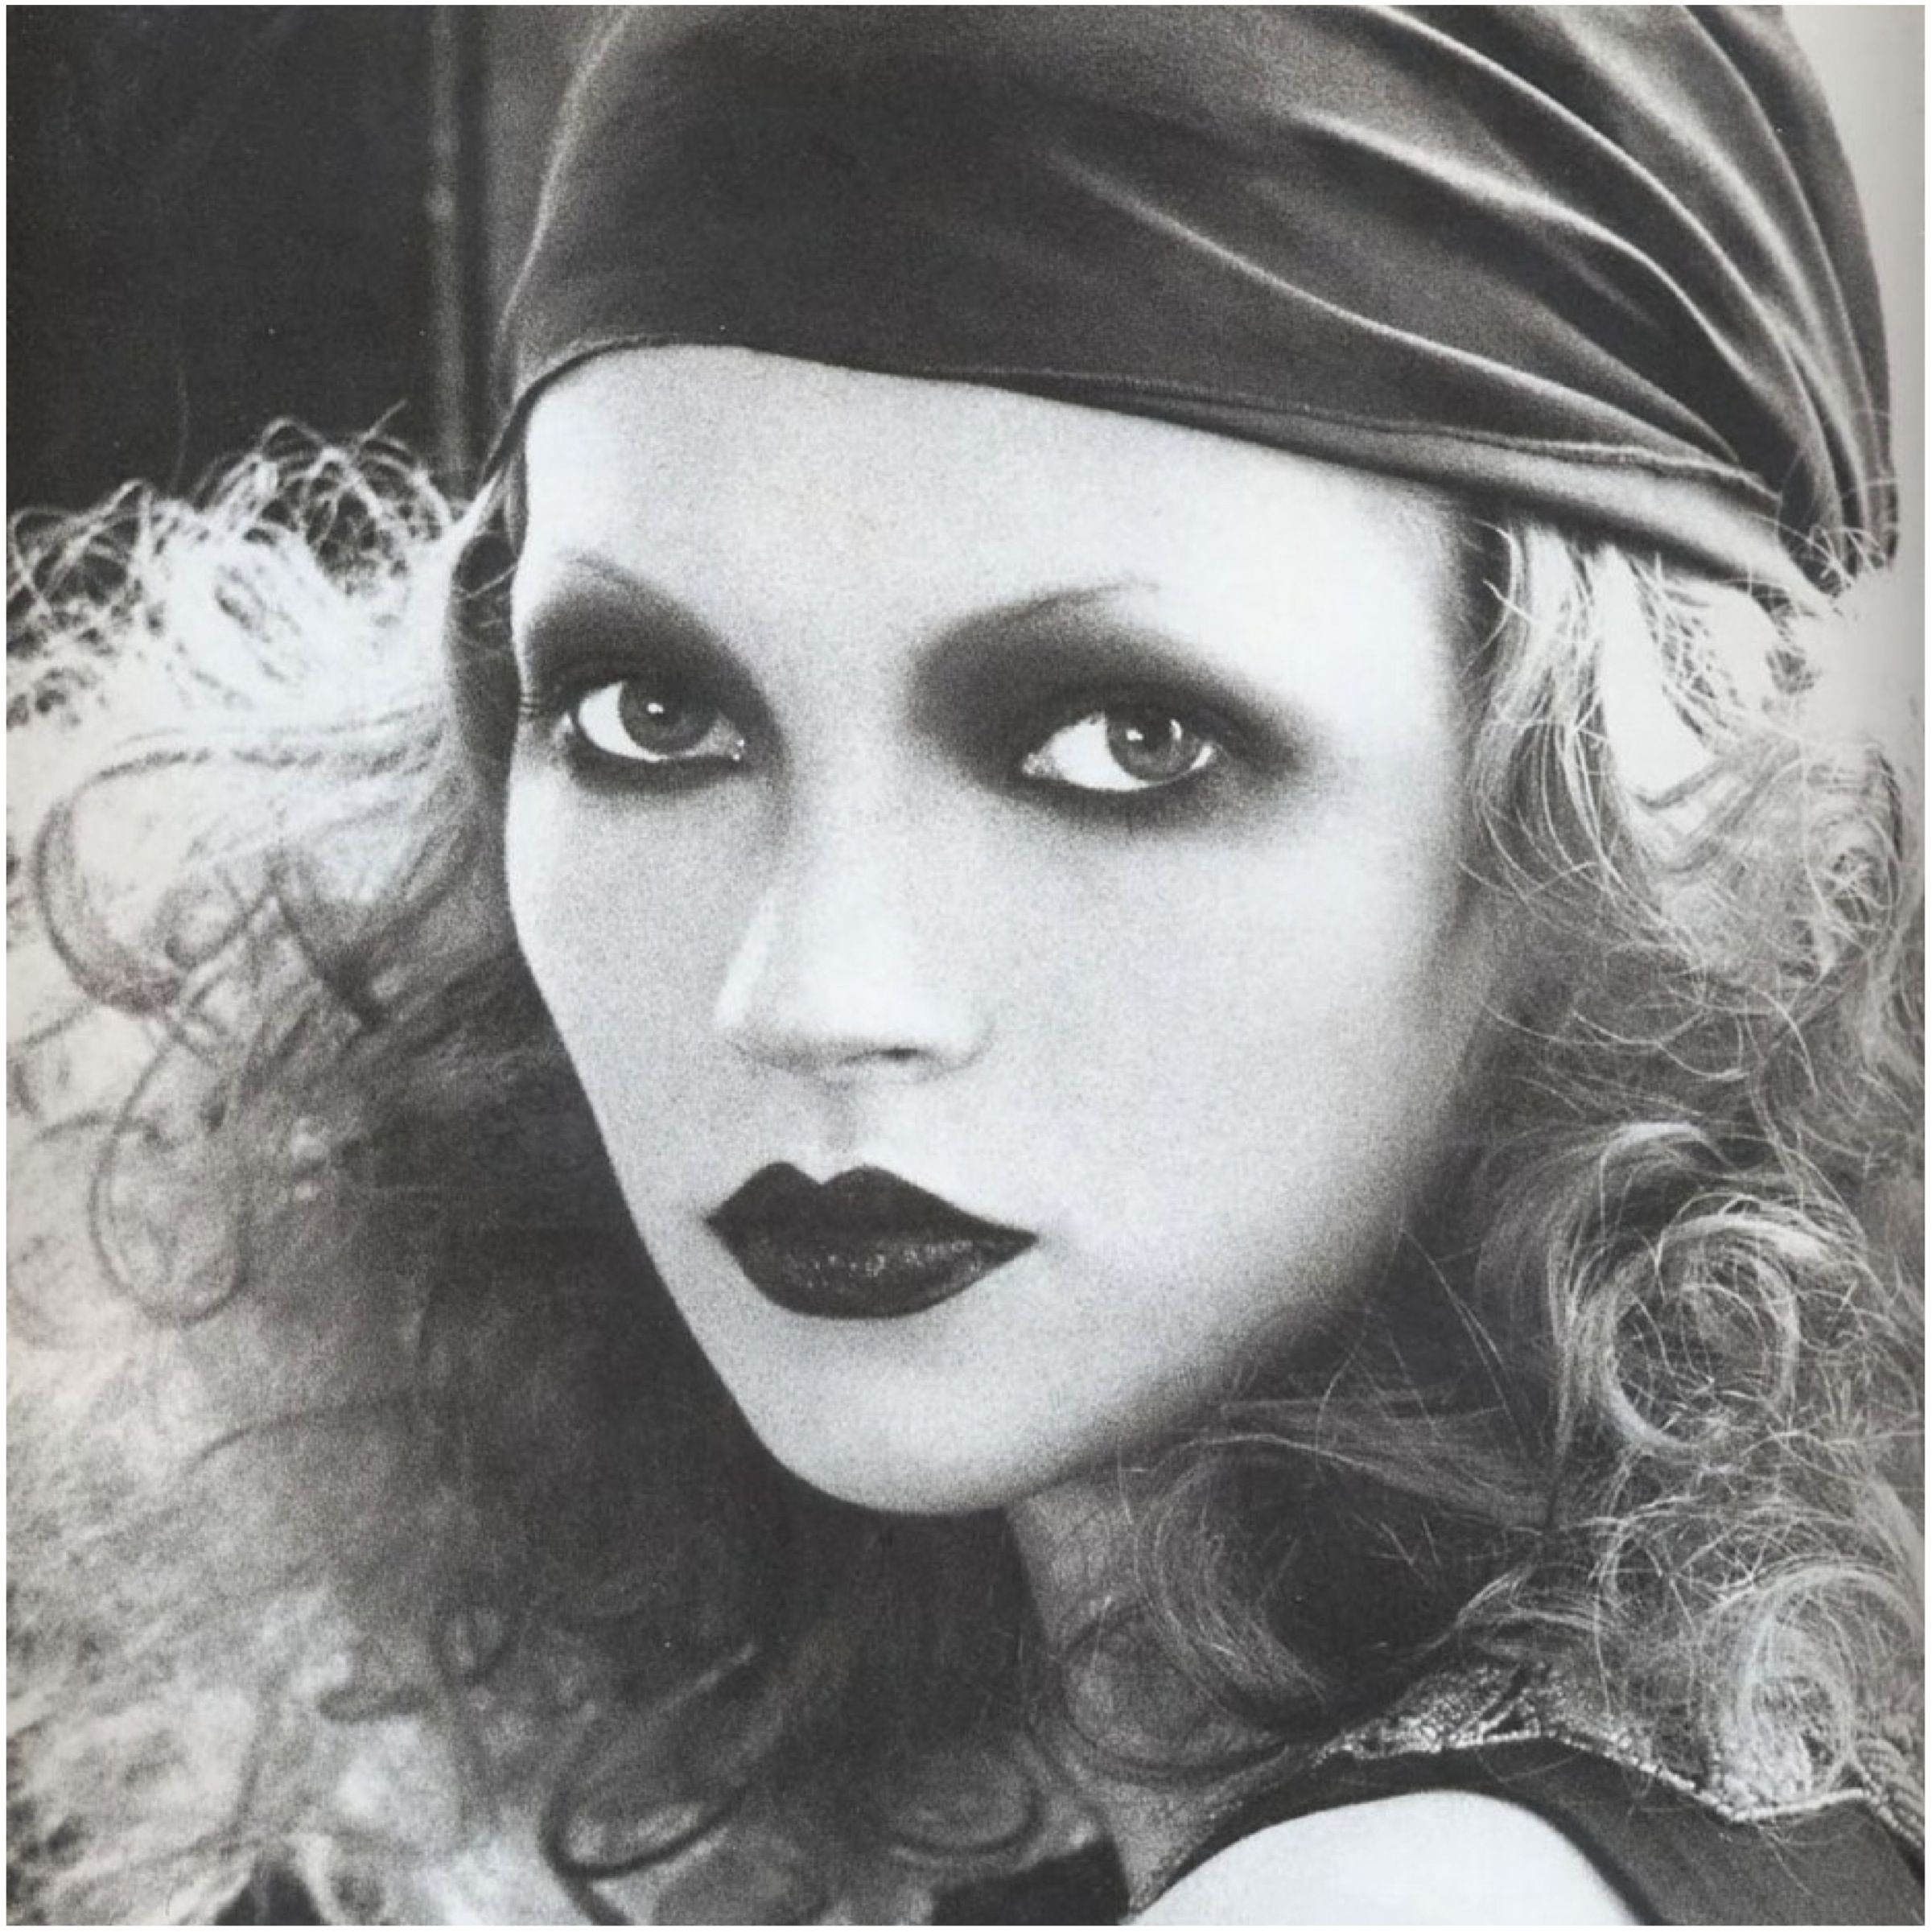 Kate Moss makeup by Kevyn Aucoin   1930s   vintage   make up   scarf   curls   hot lips   model